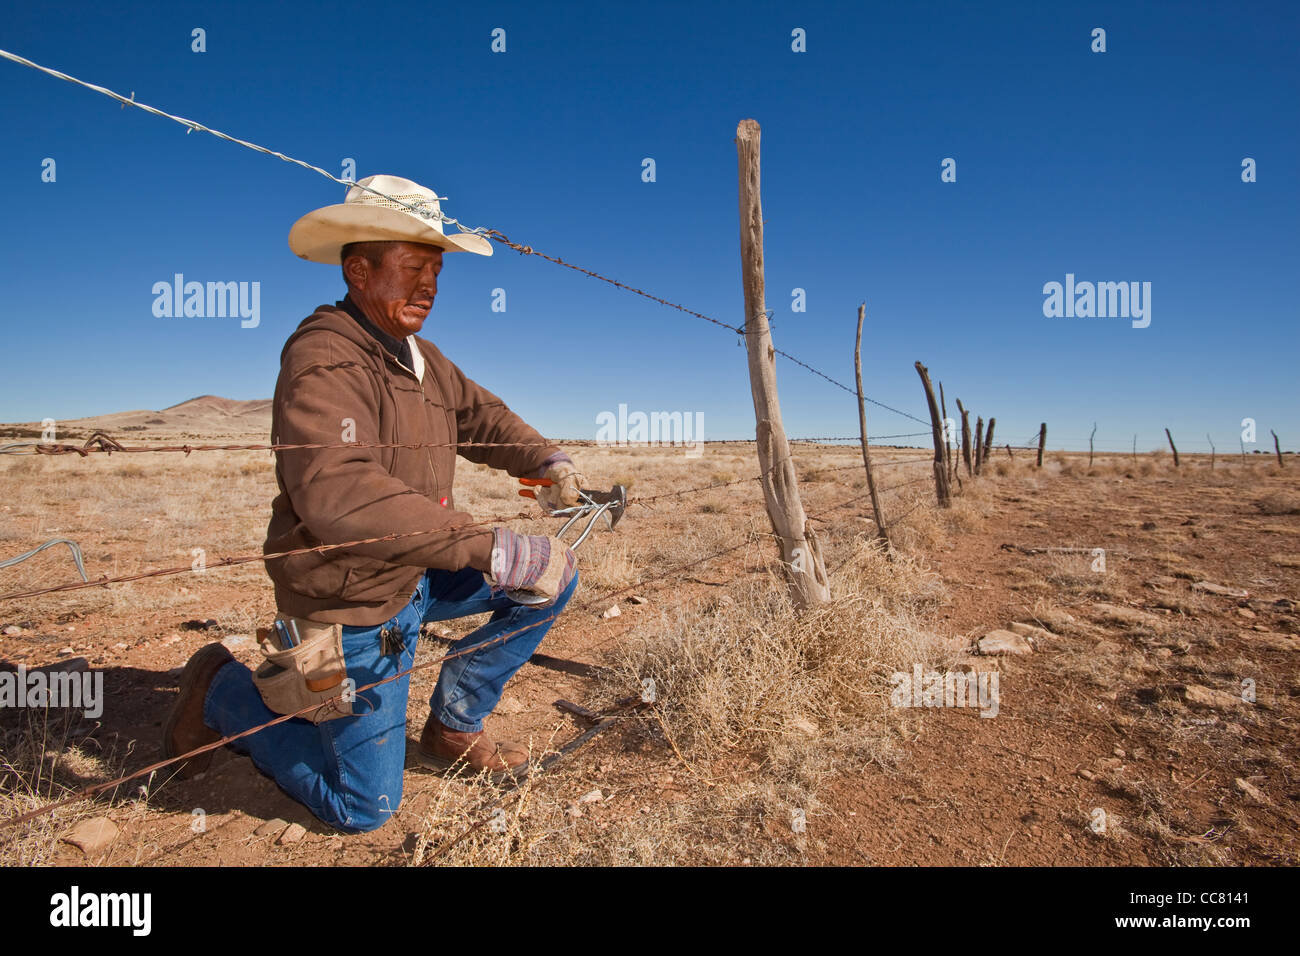 Navajo fence worker, repairing barbed wire fence on the CO Bar Ranch, north of Flagstaff, Arizona, USA - Stock Image